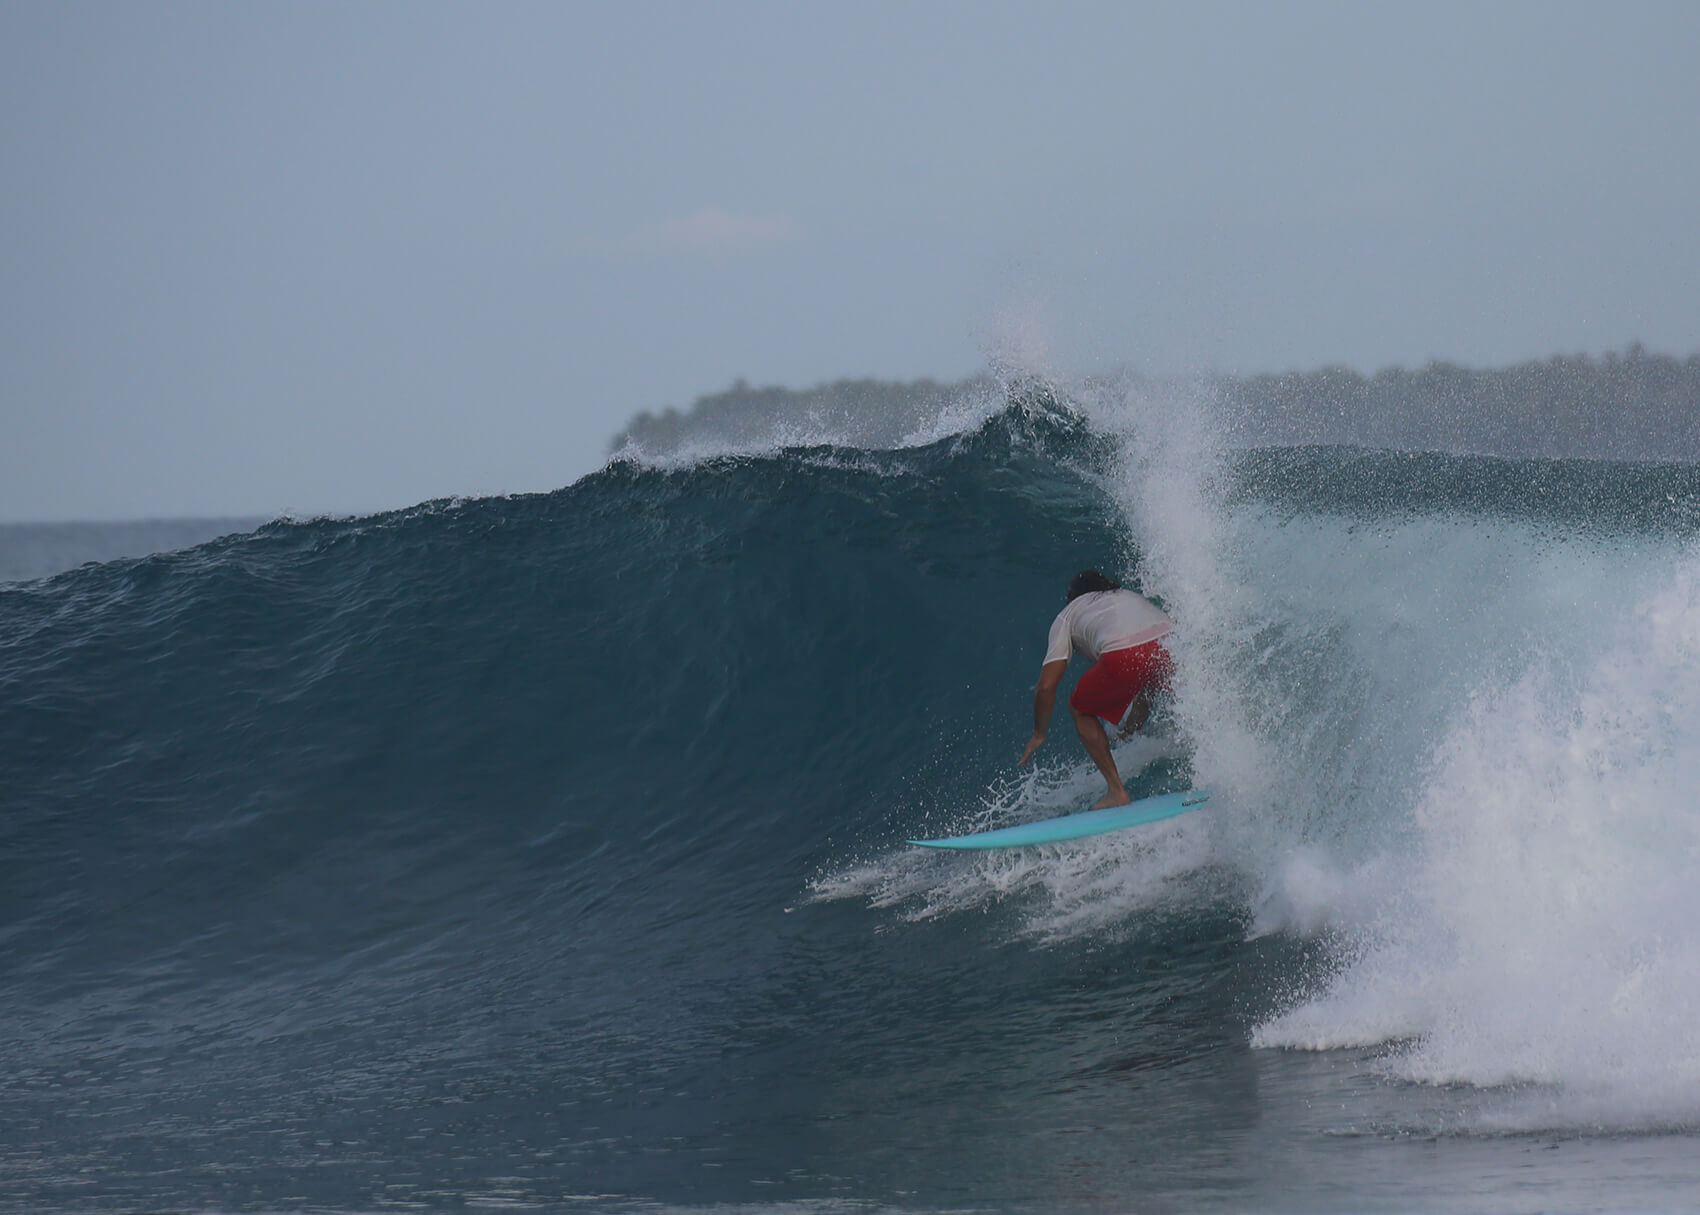 MC testing in Indo - video to come...